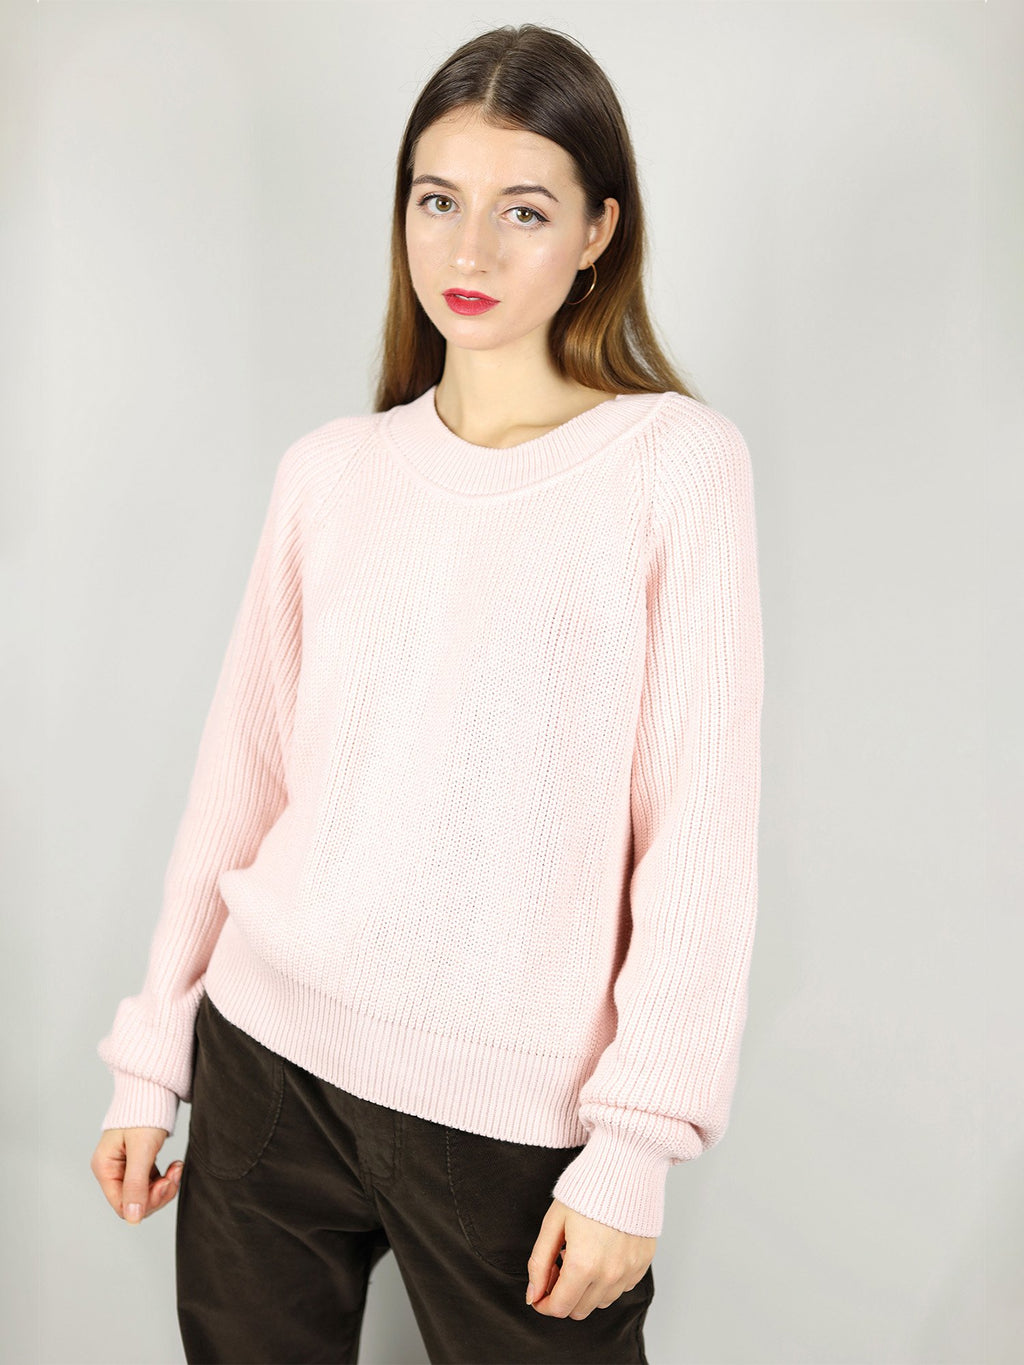 Comfortable fit, slightly oversized and warm knit. Misty pink, the organic sweater comes with long sleeves and crew neck.